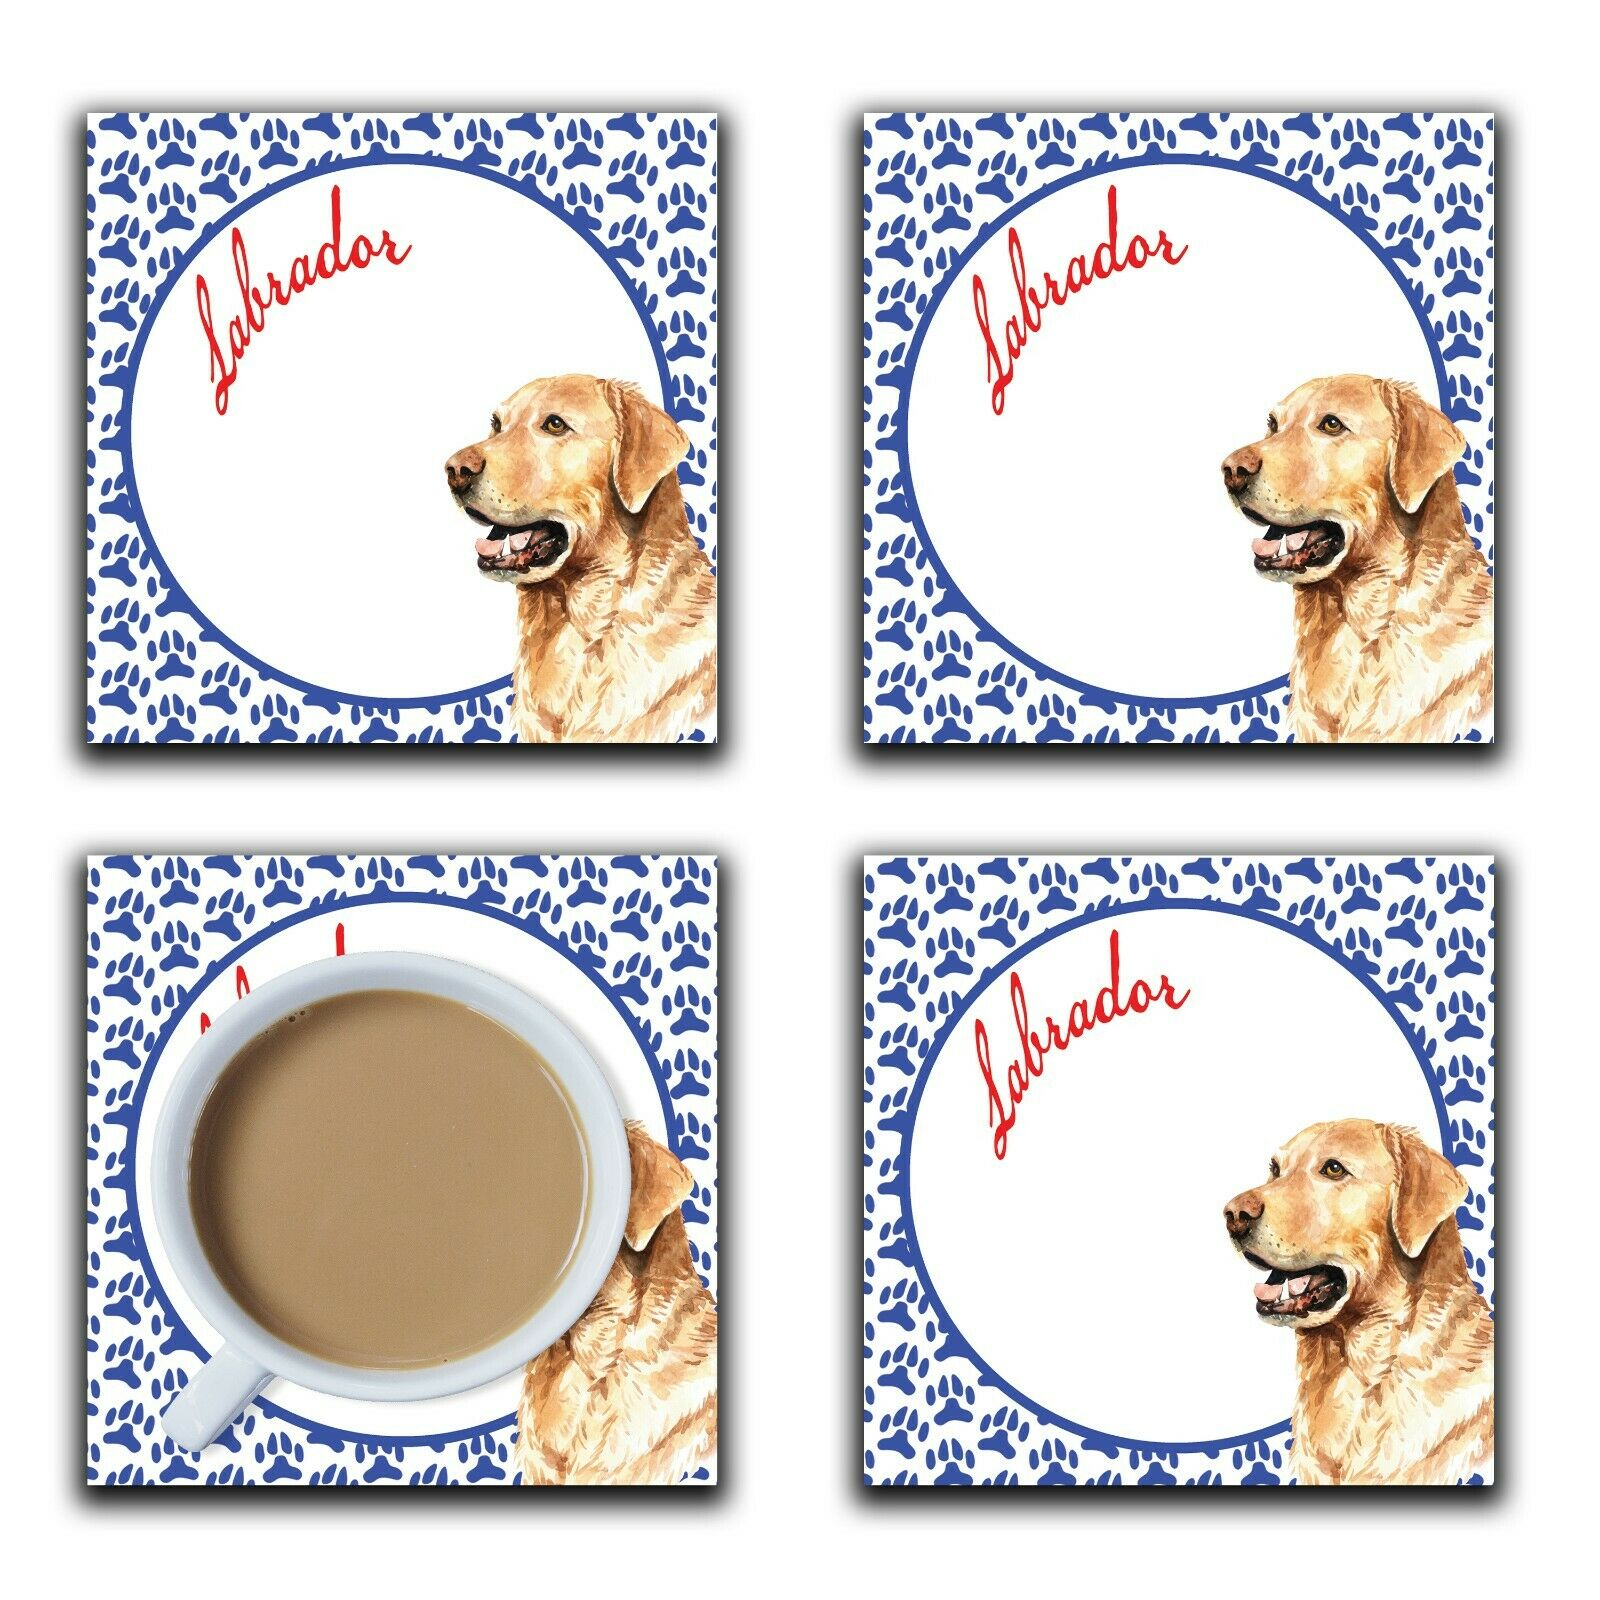 Embossi Printed Yellow Labrador, wood or ceramic tile, set of 4 Dog Coasters